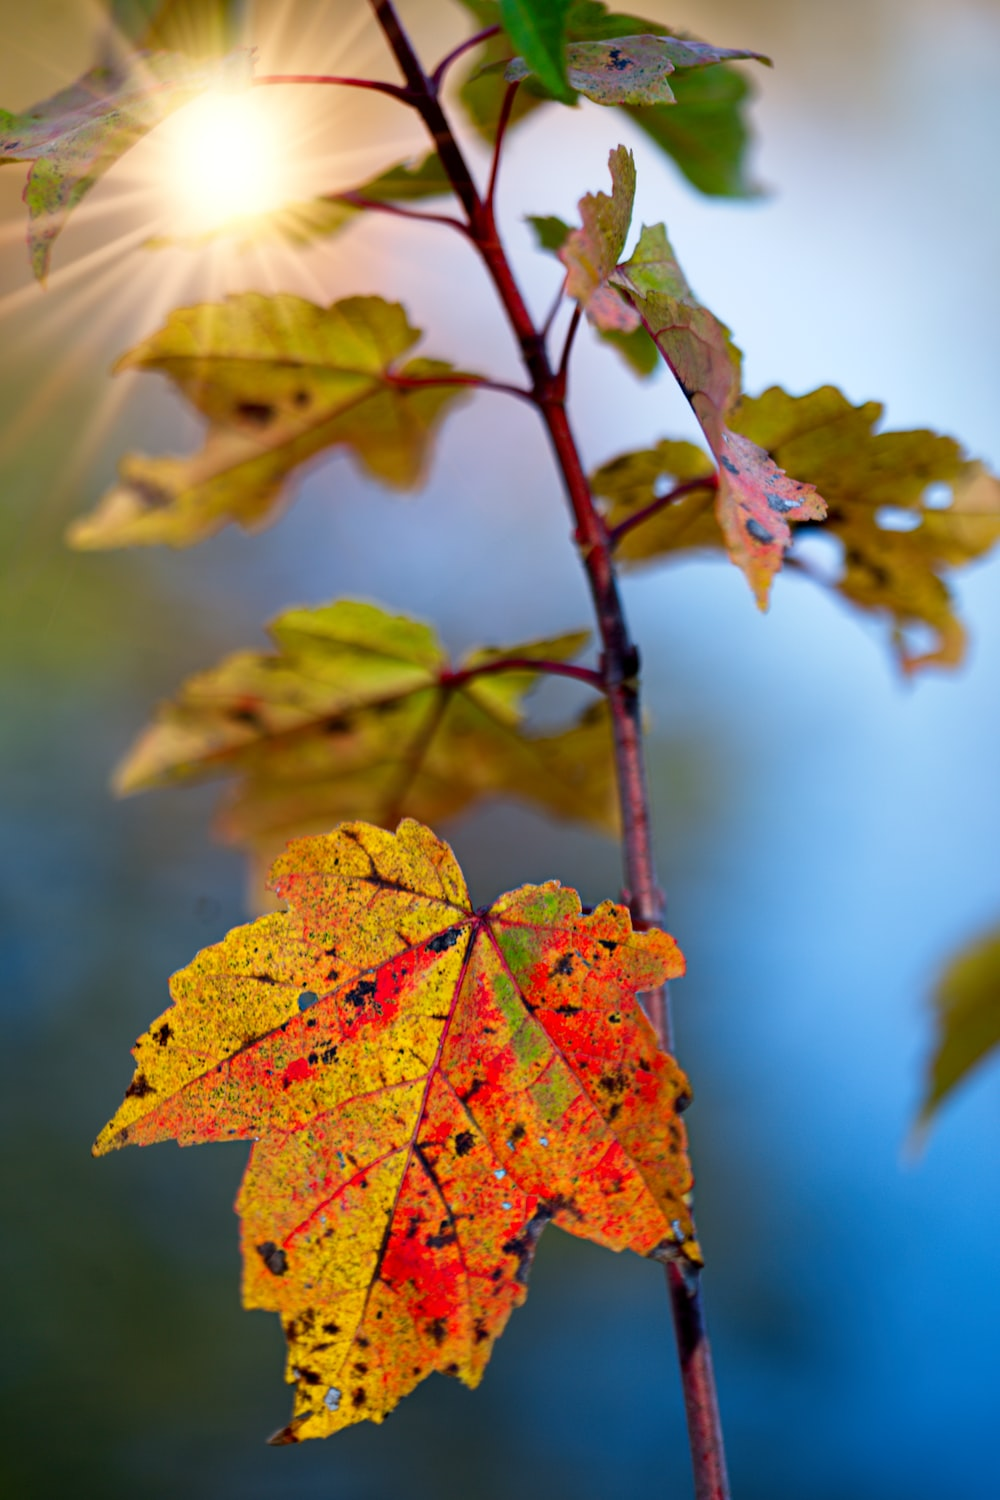 green and orange leafed plant